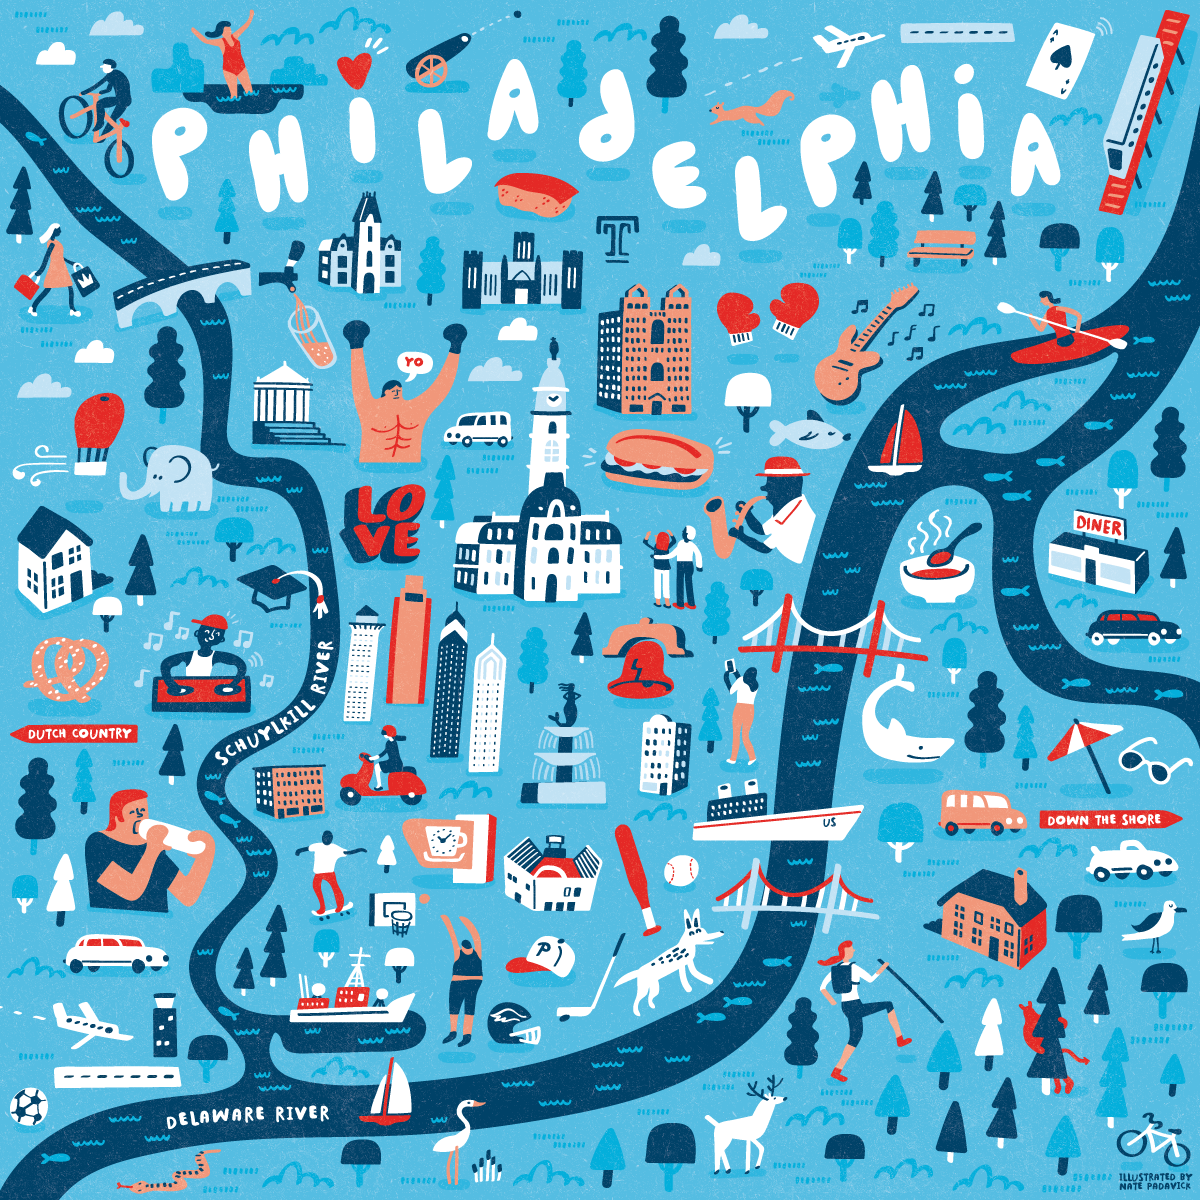 Illustrated-Map-of-Philadelphia-by-Nate-Padavick.png